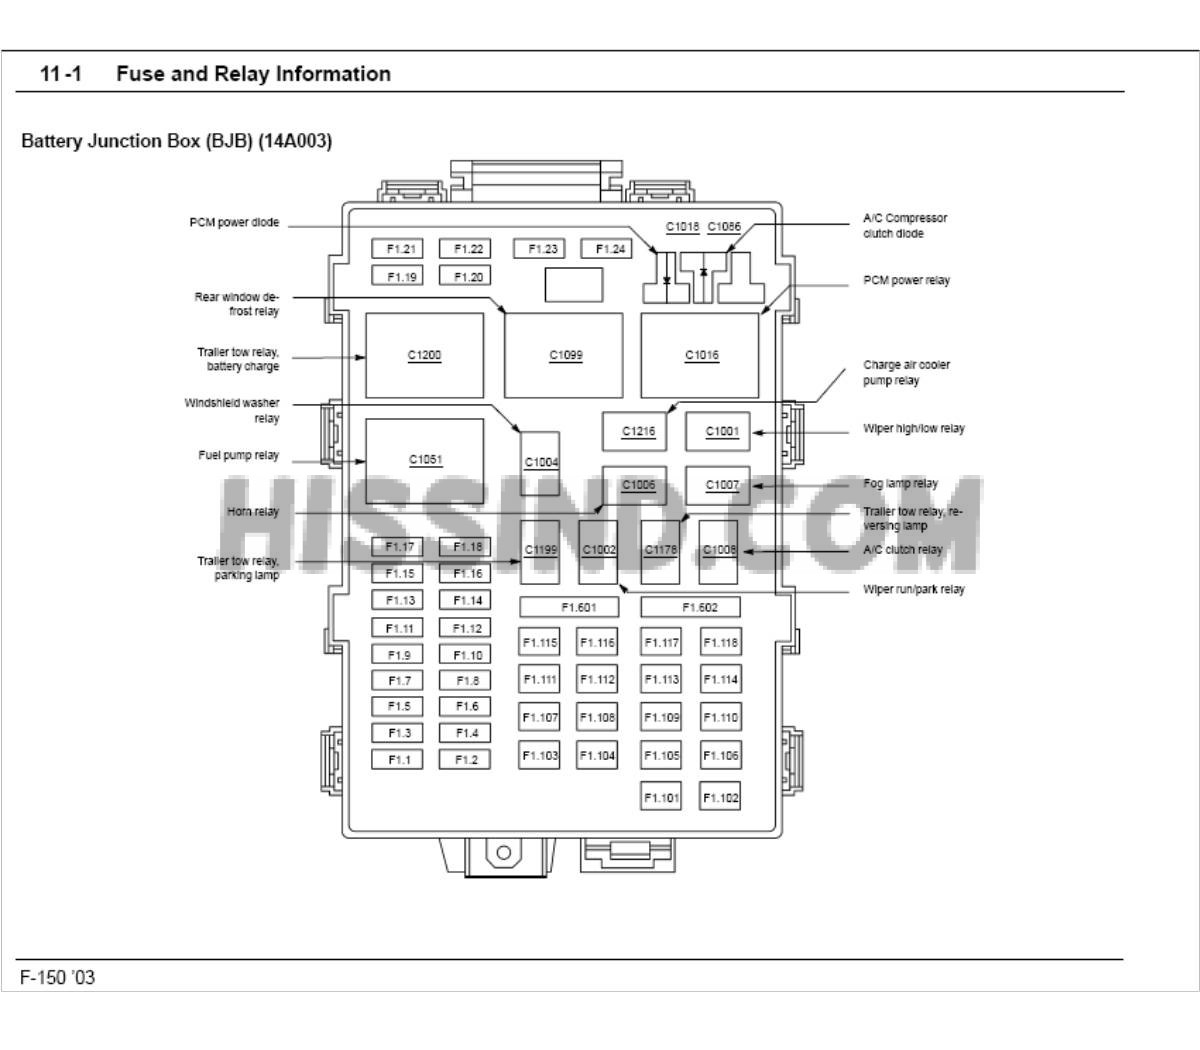 2000 F150 Fuse Box Diagram Trusted Wiring Diagram 2004 Hyundai Santa Fe Fuse  Box Diagram 05 F150 Fuse Box Diagram